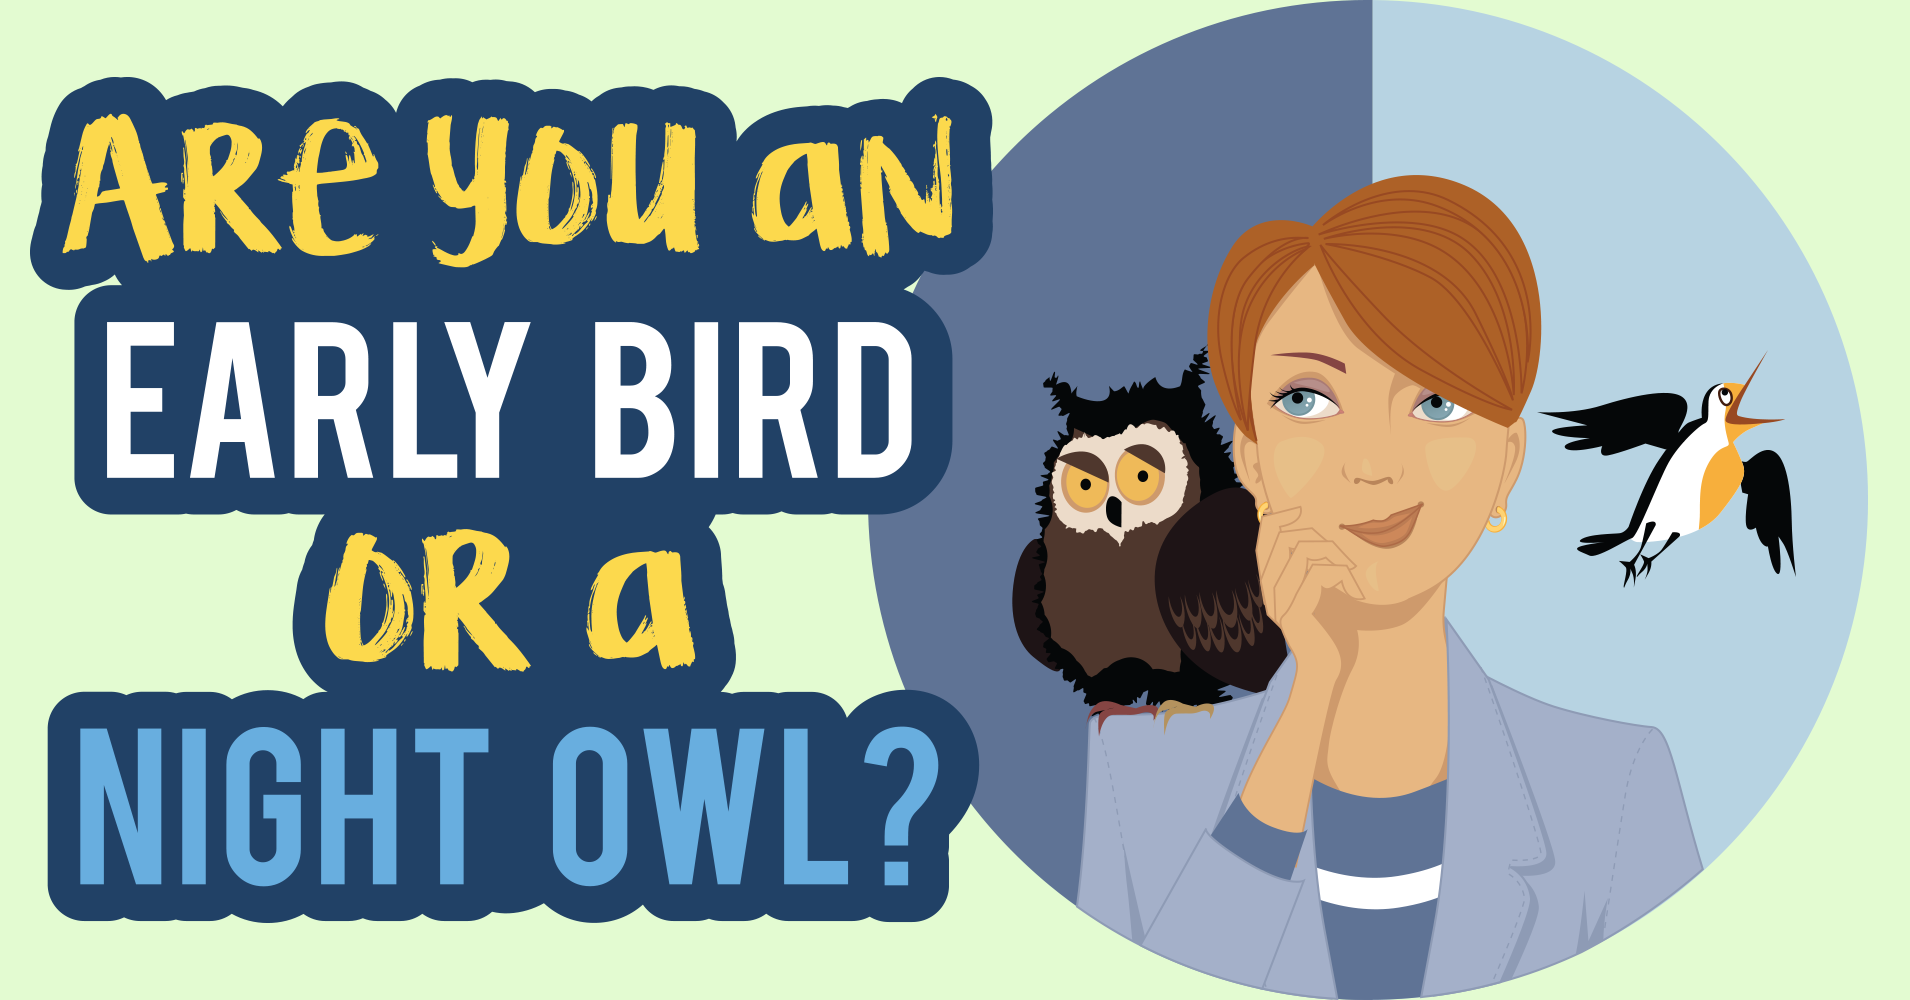 Are You An Early Bird Or A Night Owl?